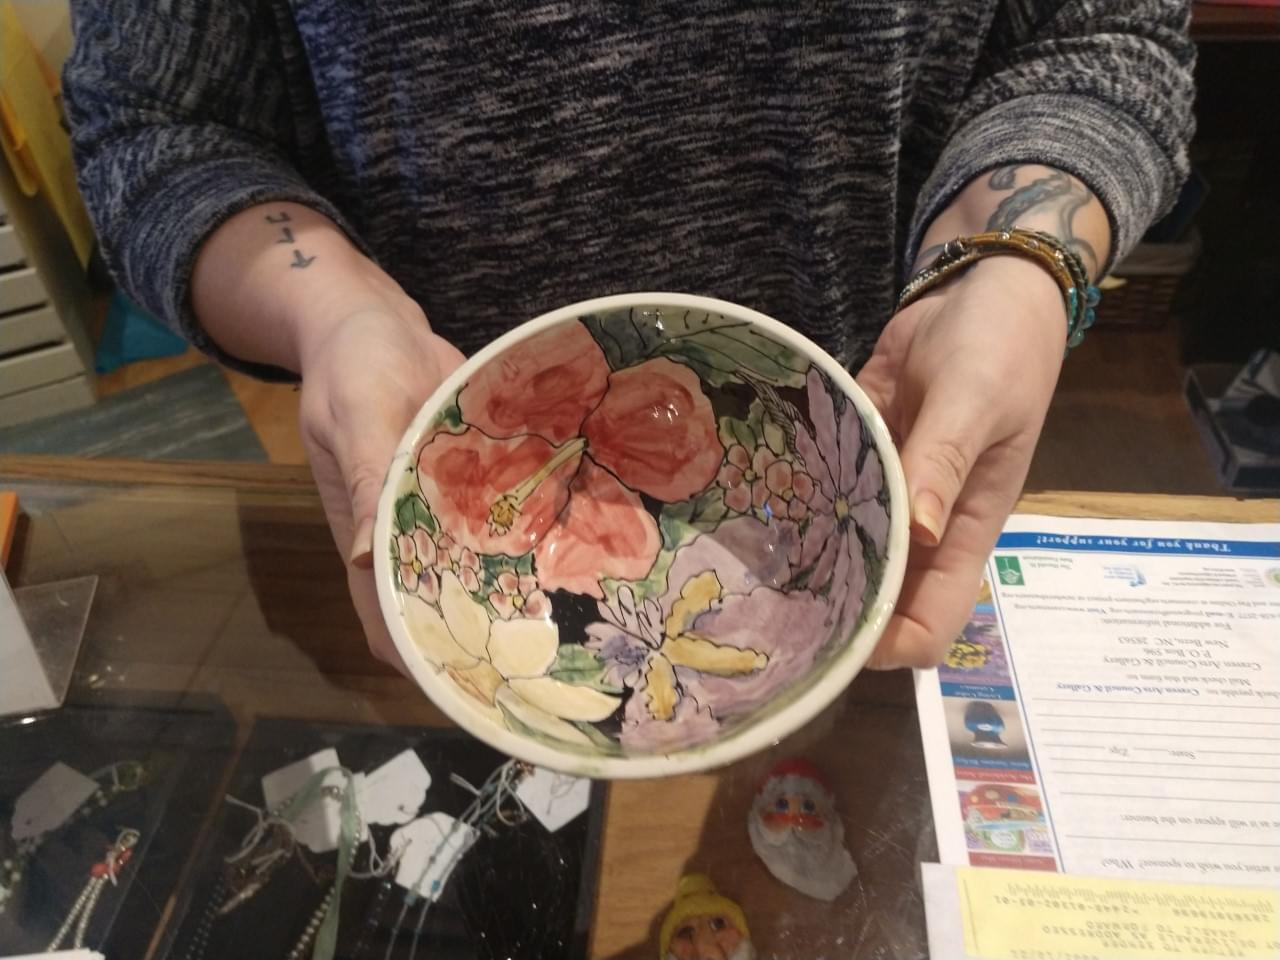 Empty Bowls 2021 Fundraiser at the Craven Arts Council & Gallery and Temple Church